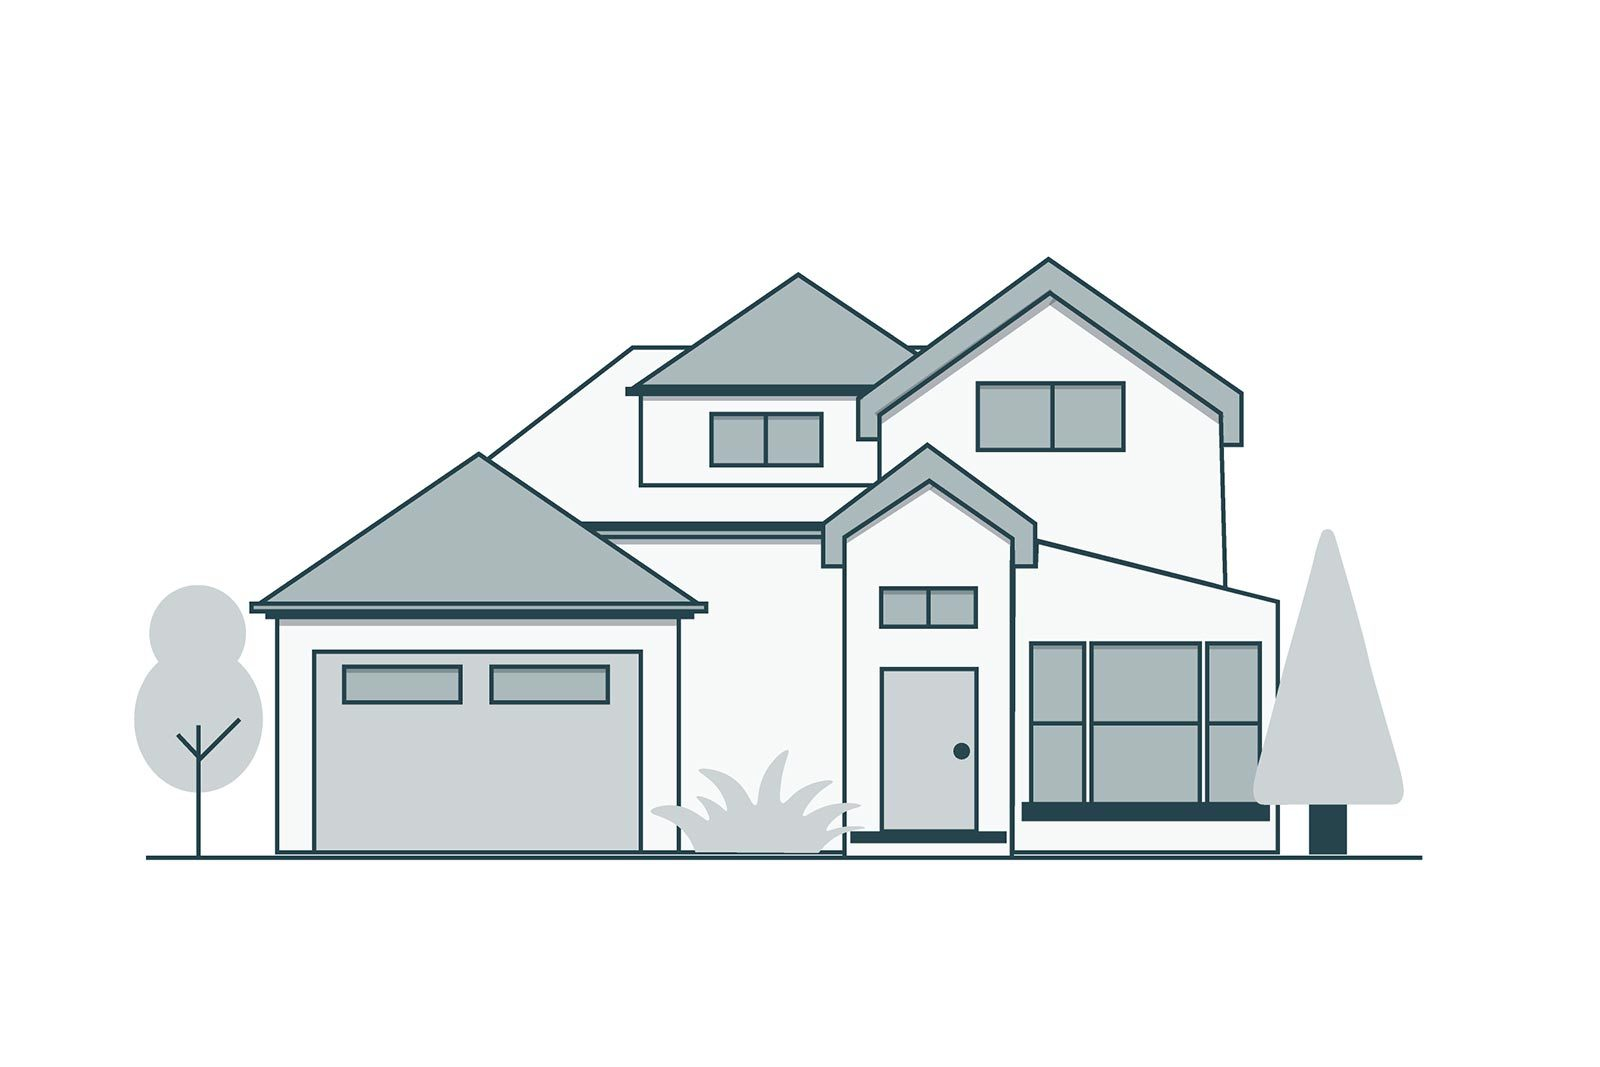 2090 Pacific Ave Apt 306 San Francisco, CA 94109